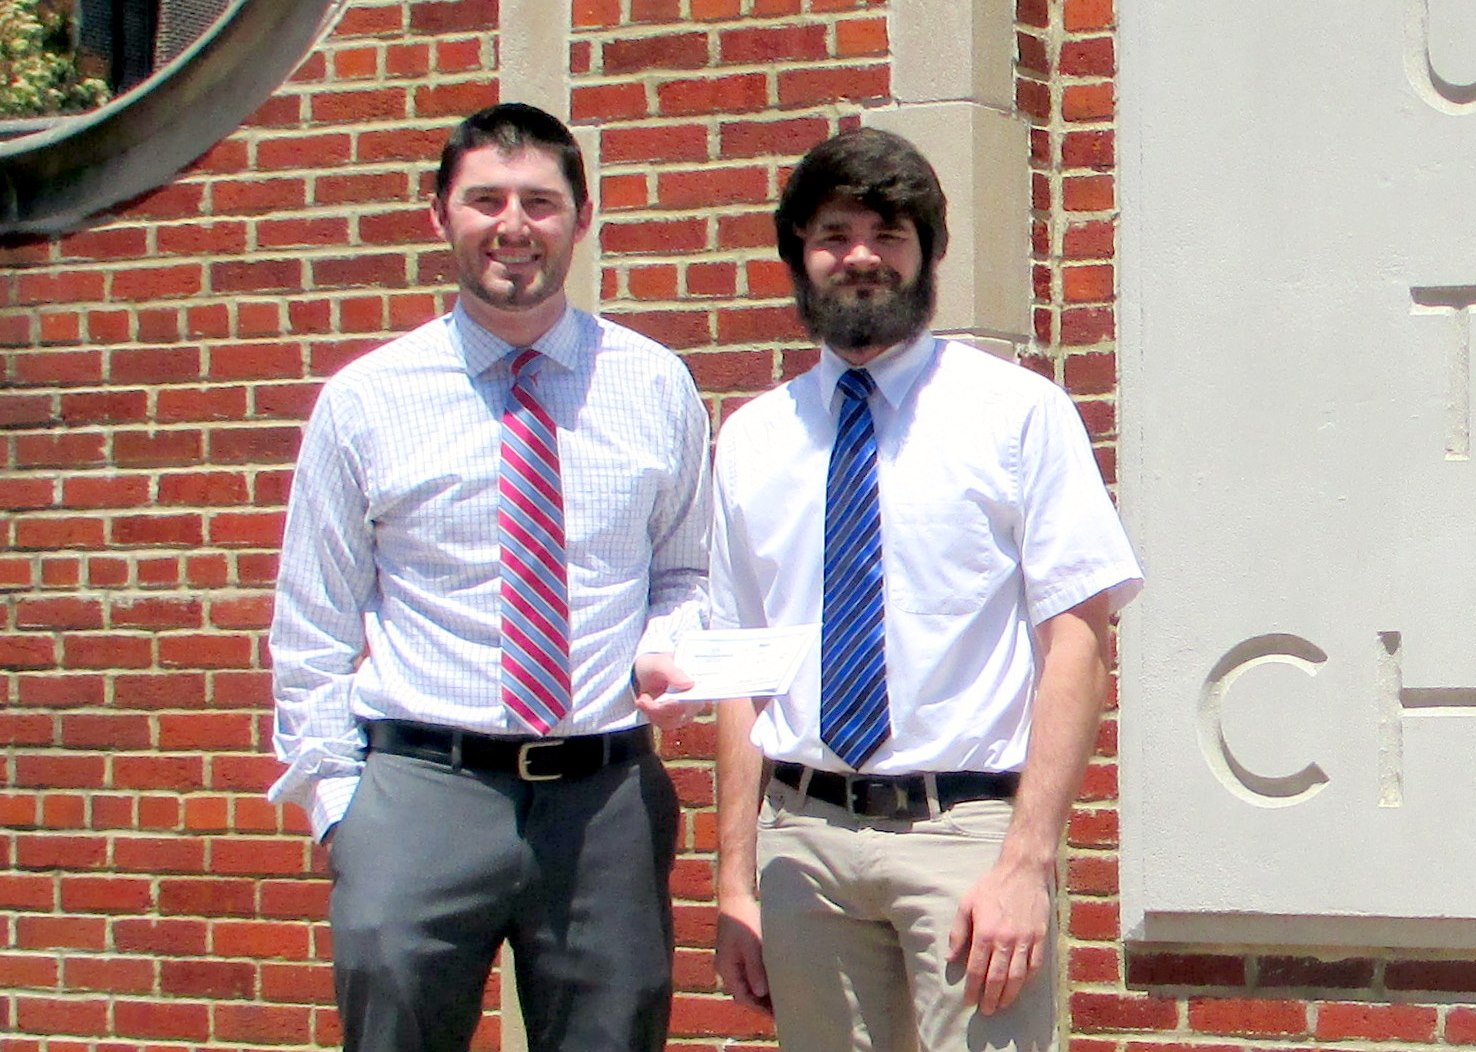 Left to right: Eddie Wade, PE, LDA Engineering, Inc., ACEC of TN Chattanooga Chapter President and  Nicholas True, National ACEC Scholarship Recipient